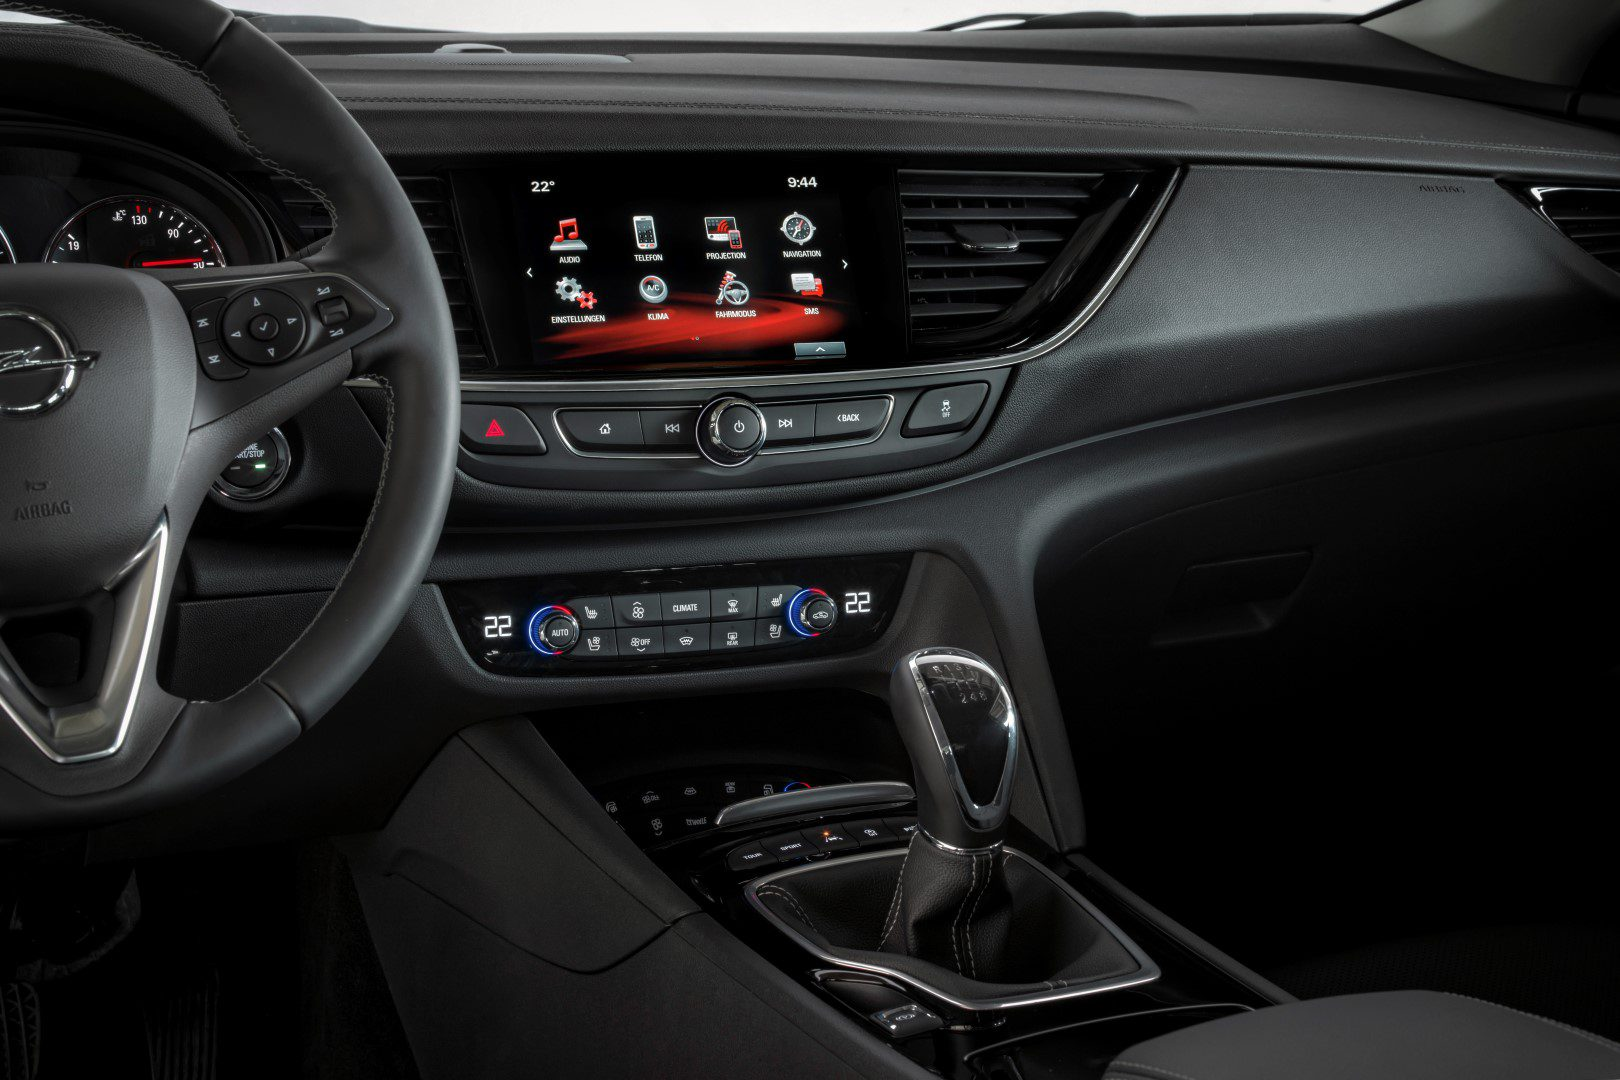 prijzen opel insignia grand sport en insignia sports tourer. Black Bedroom Furniture Sets. Home Design Ideas